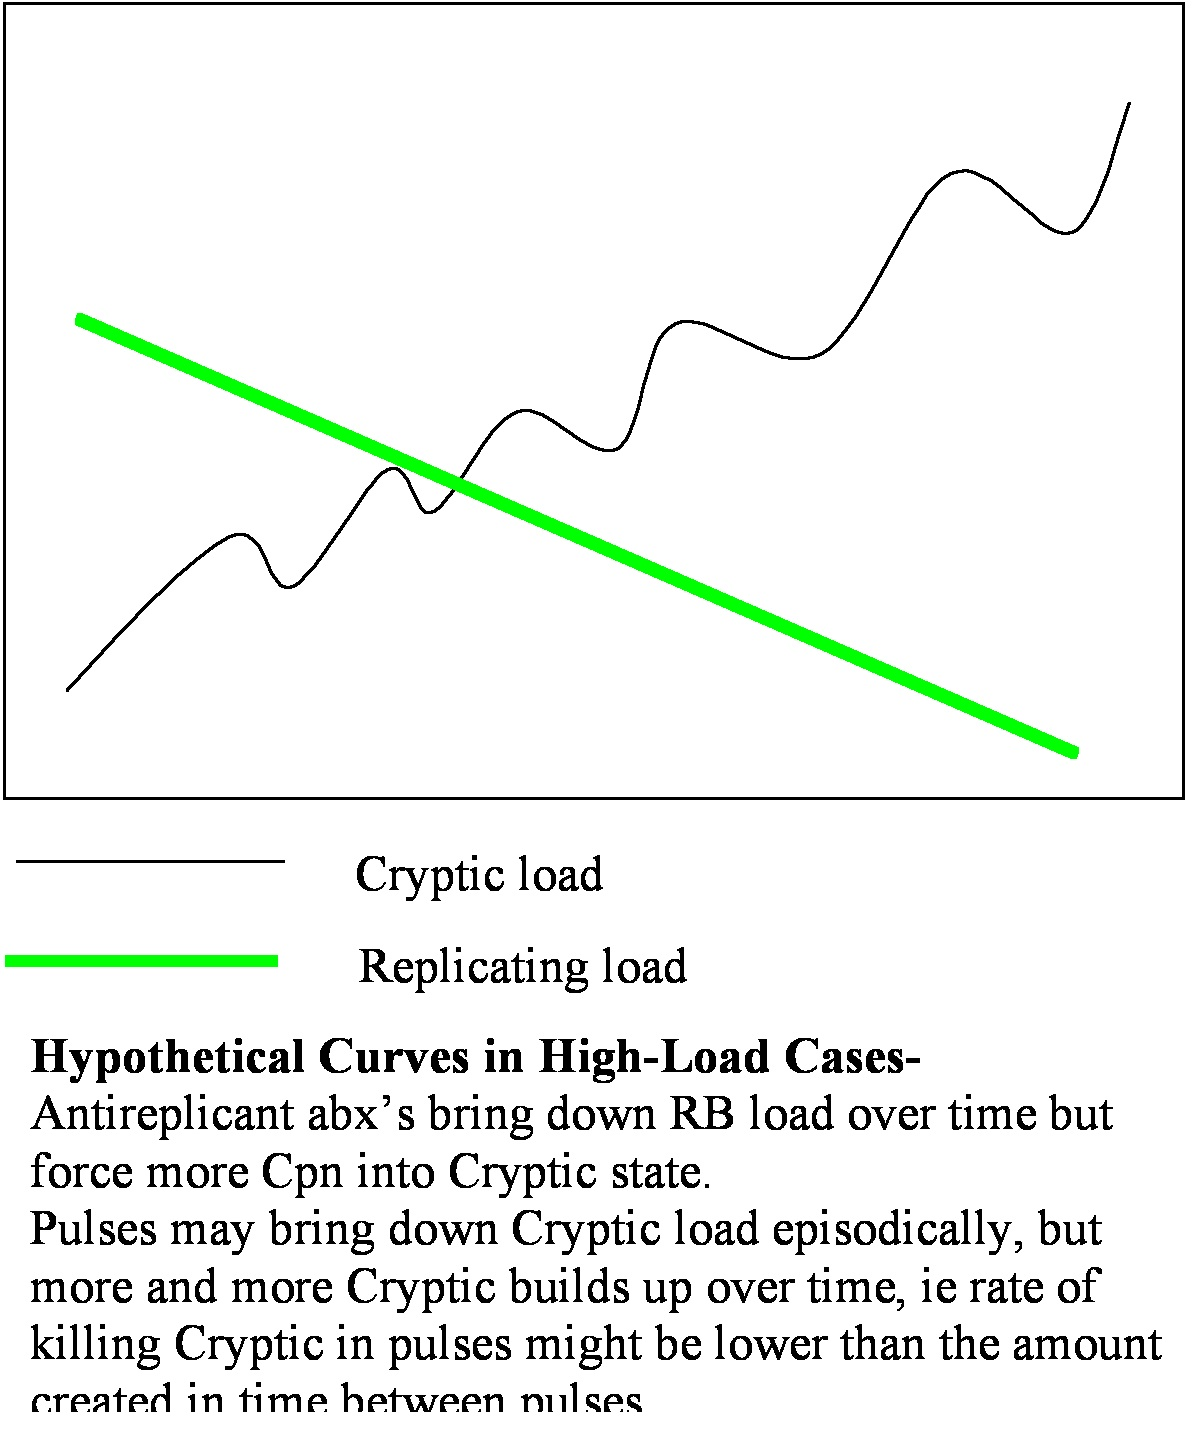 Hypothetical curve of increasing cryptic load with long pulsed treatment and high initial load